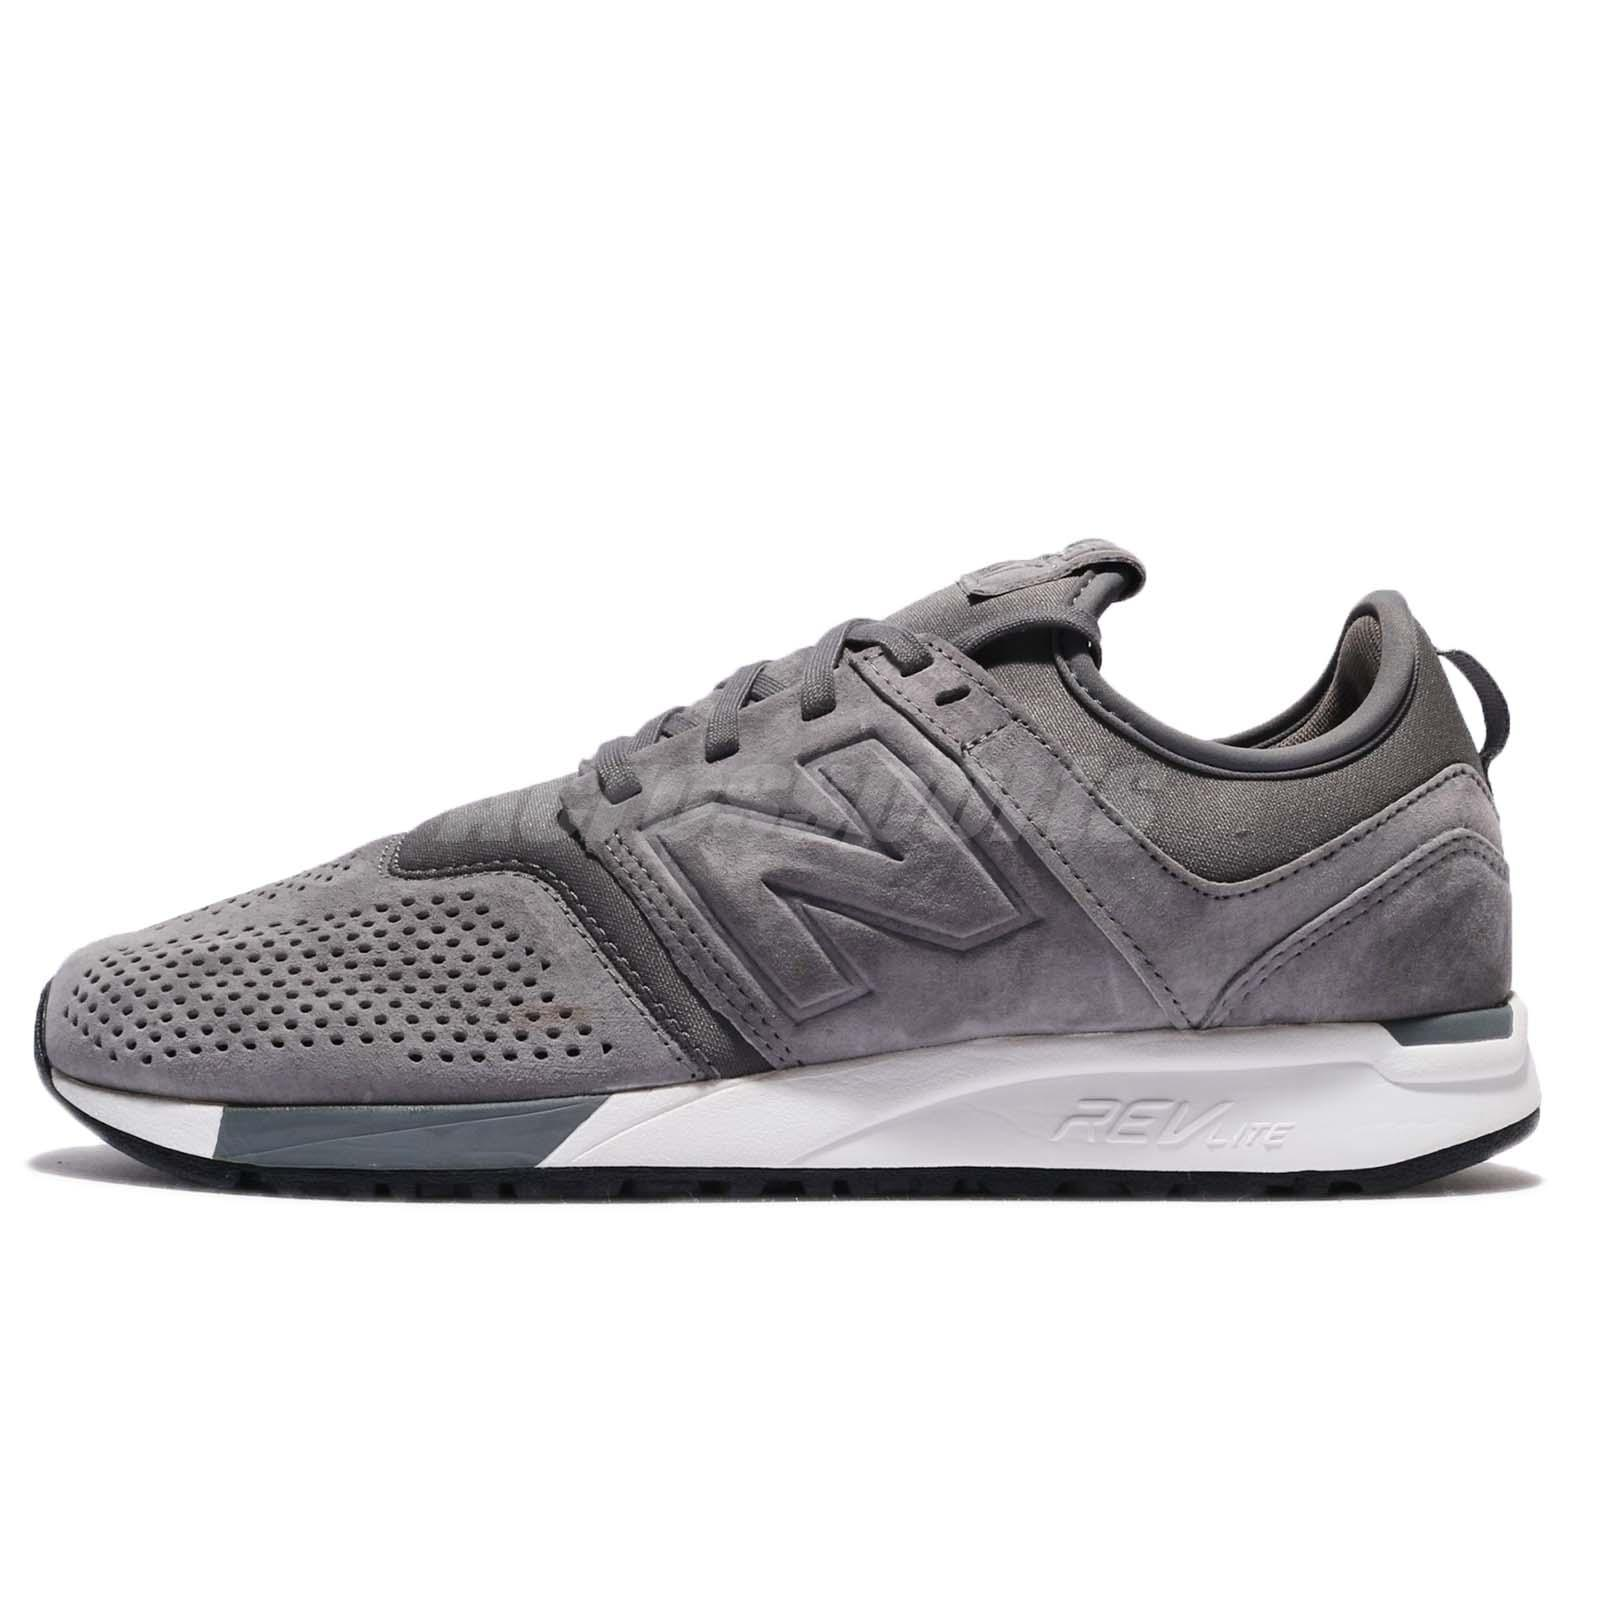 new balance 247 white. new balance mrl247ly d 247 grey white suede men running shoes sneakers mrl247lyd